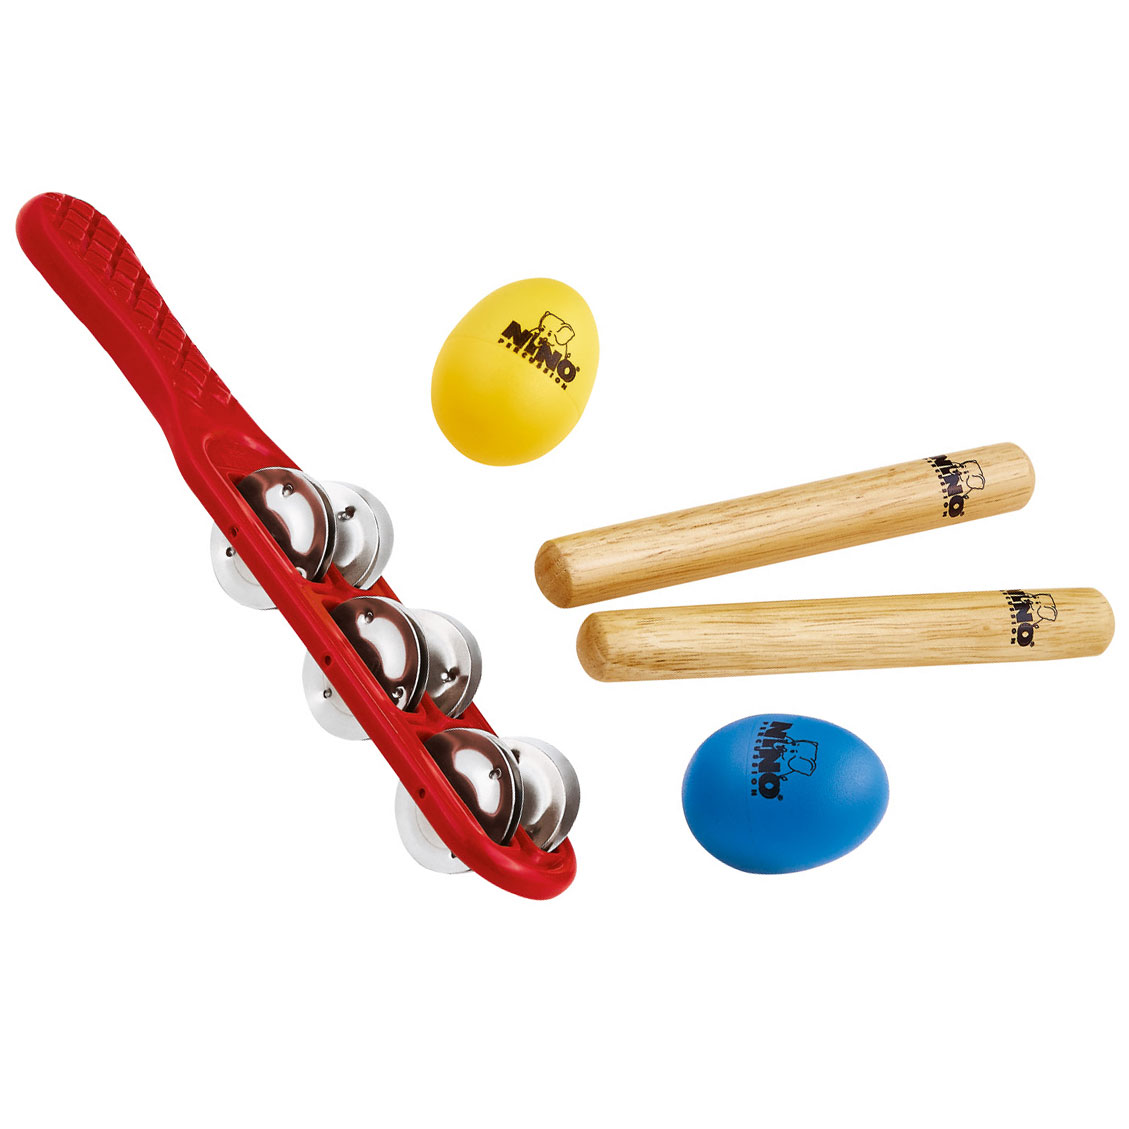 Meinl Nino Percussion Instrument Set 2